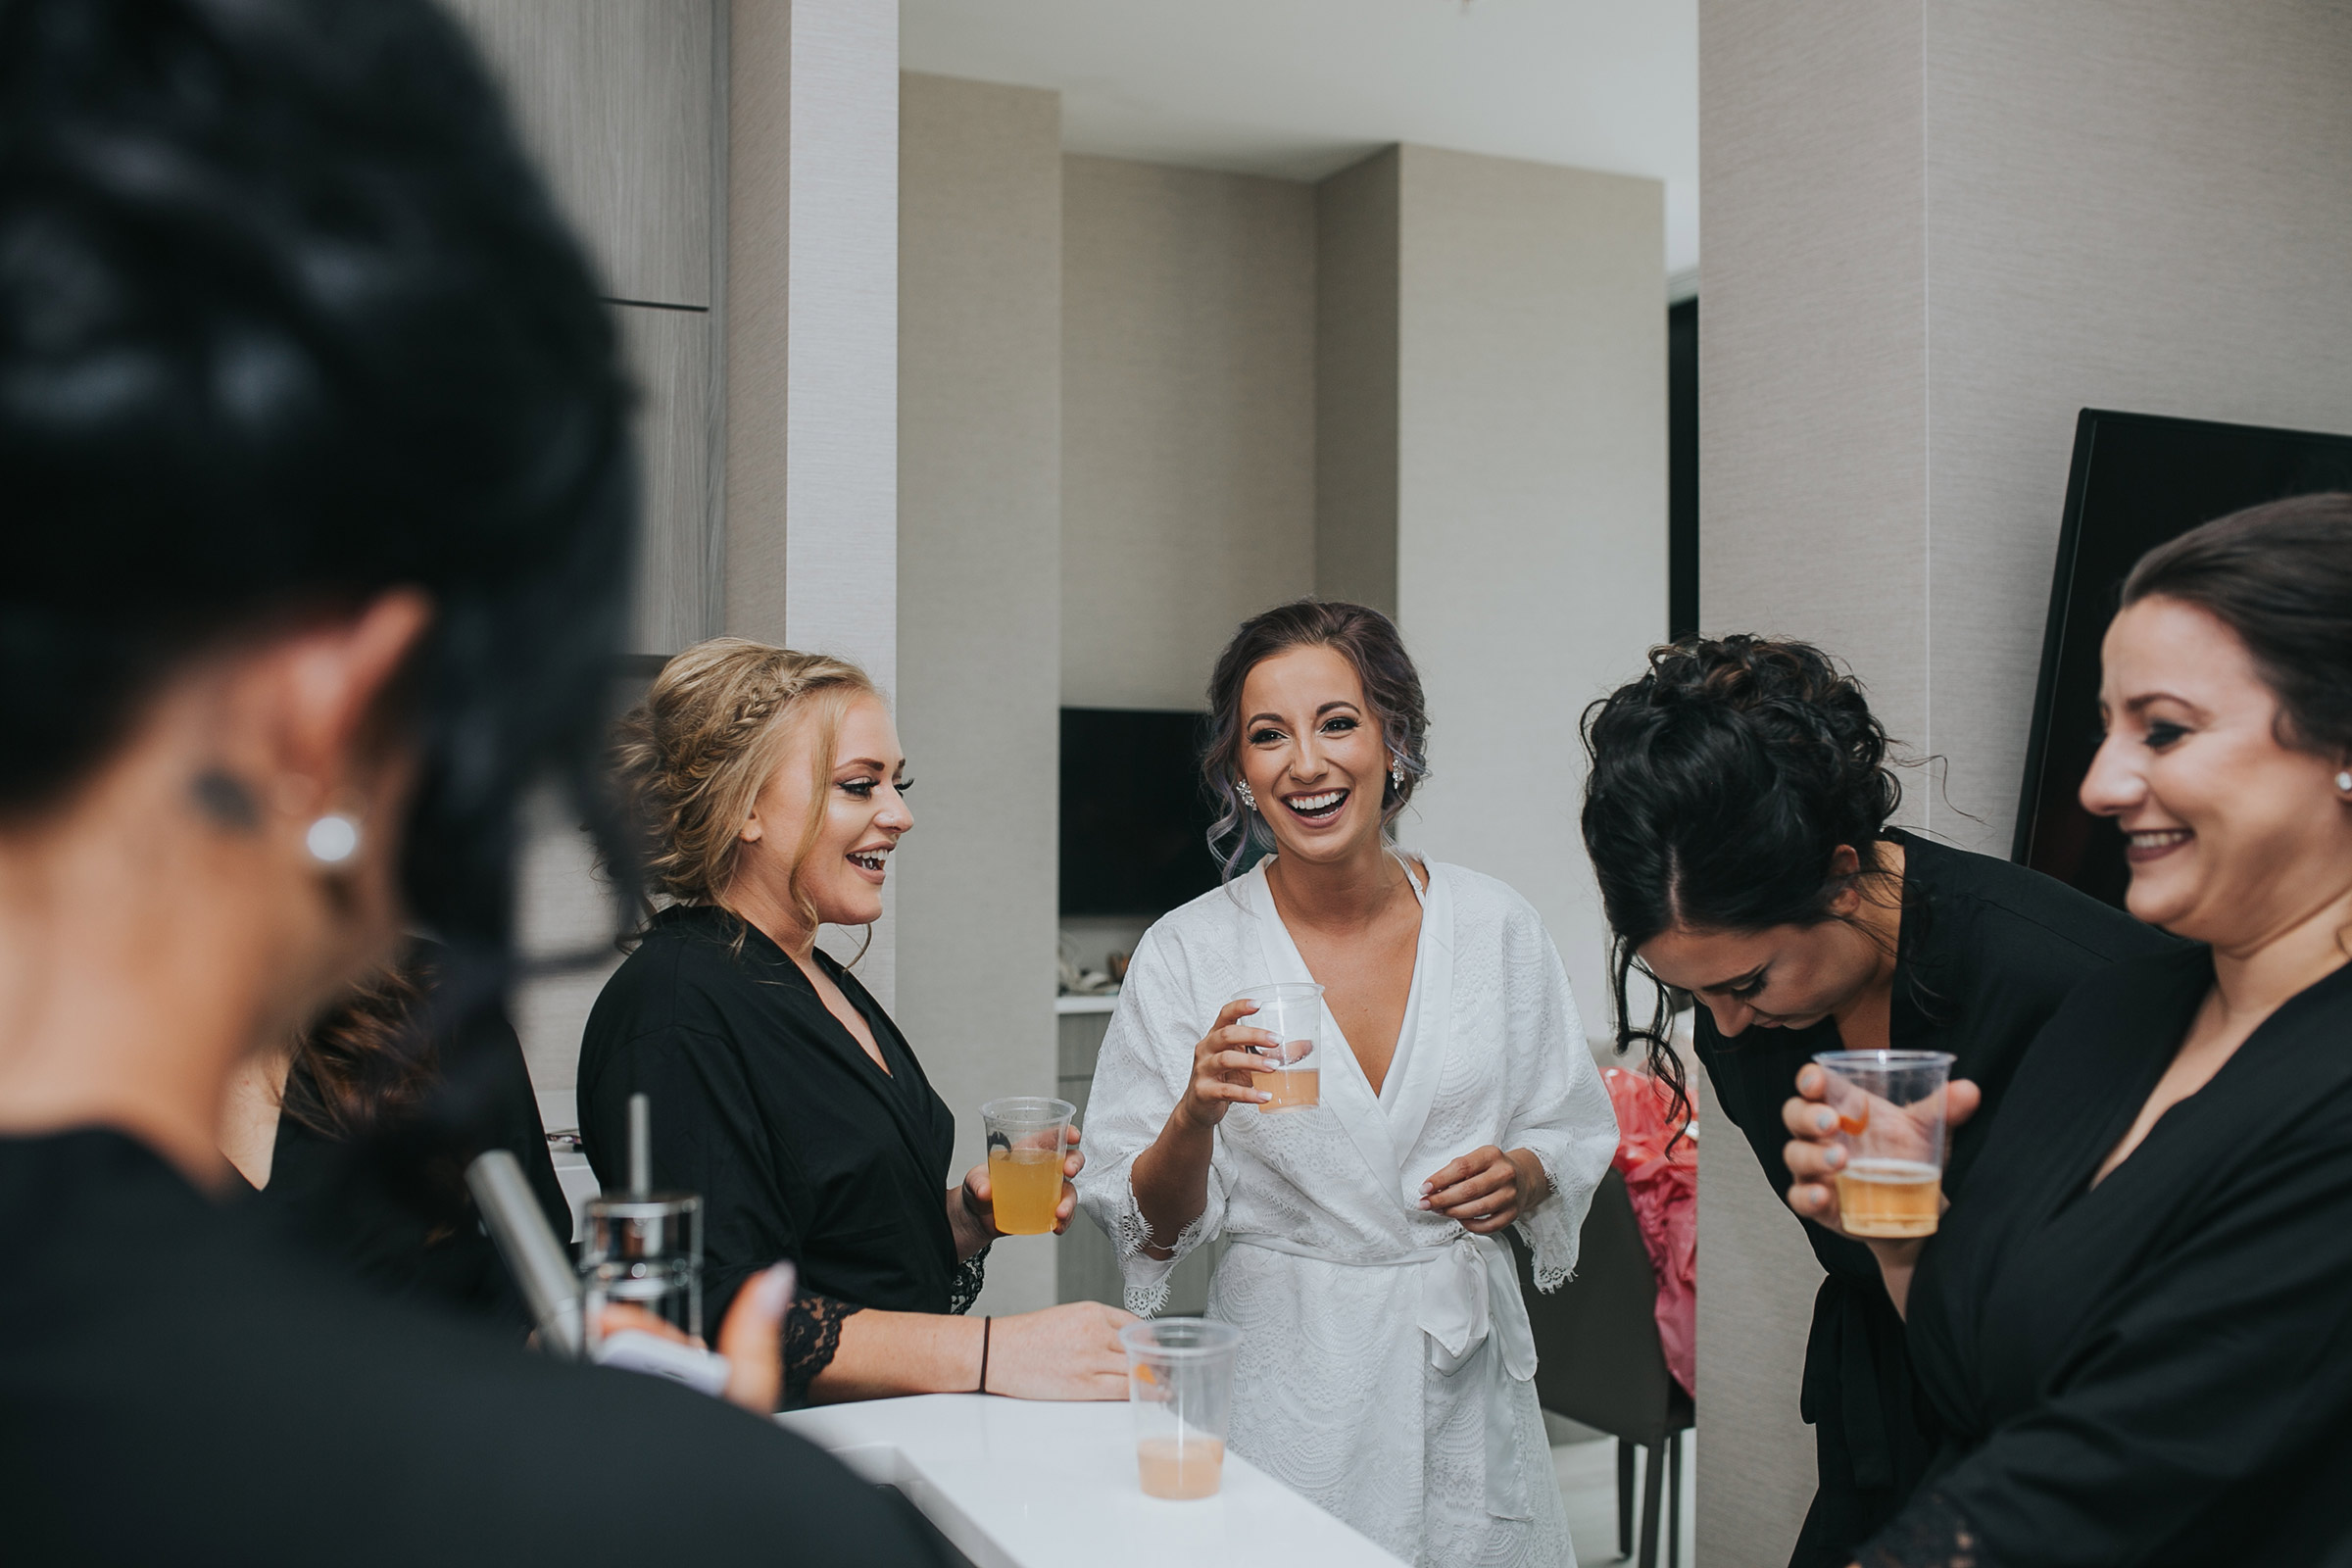 bridesmaids-laughing-with-bride-desmoines-iowa-ac-hotel-raelyn-ramey-photography.jpg